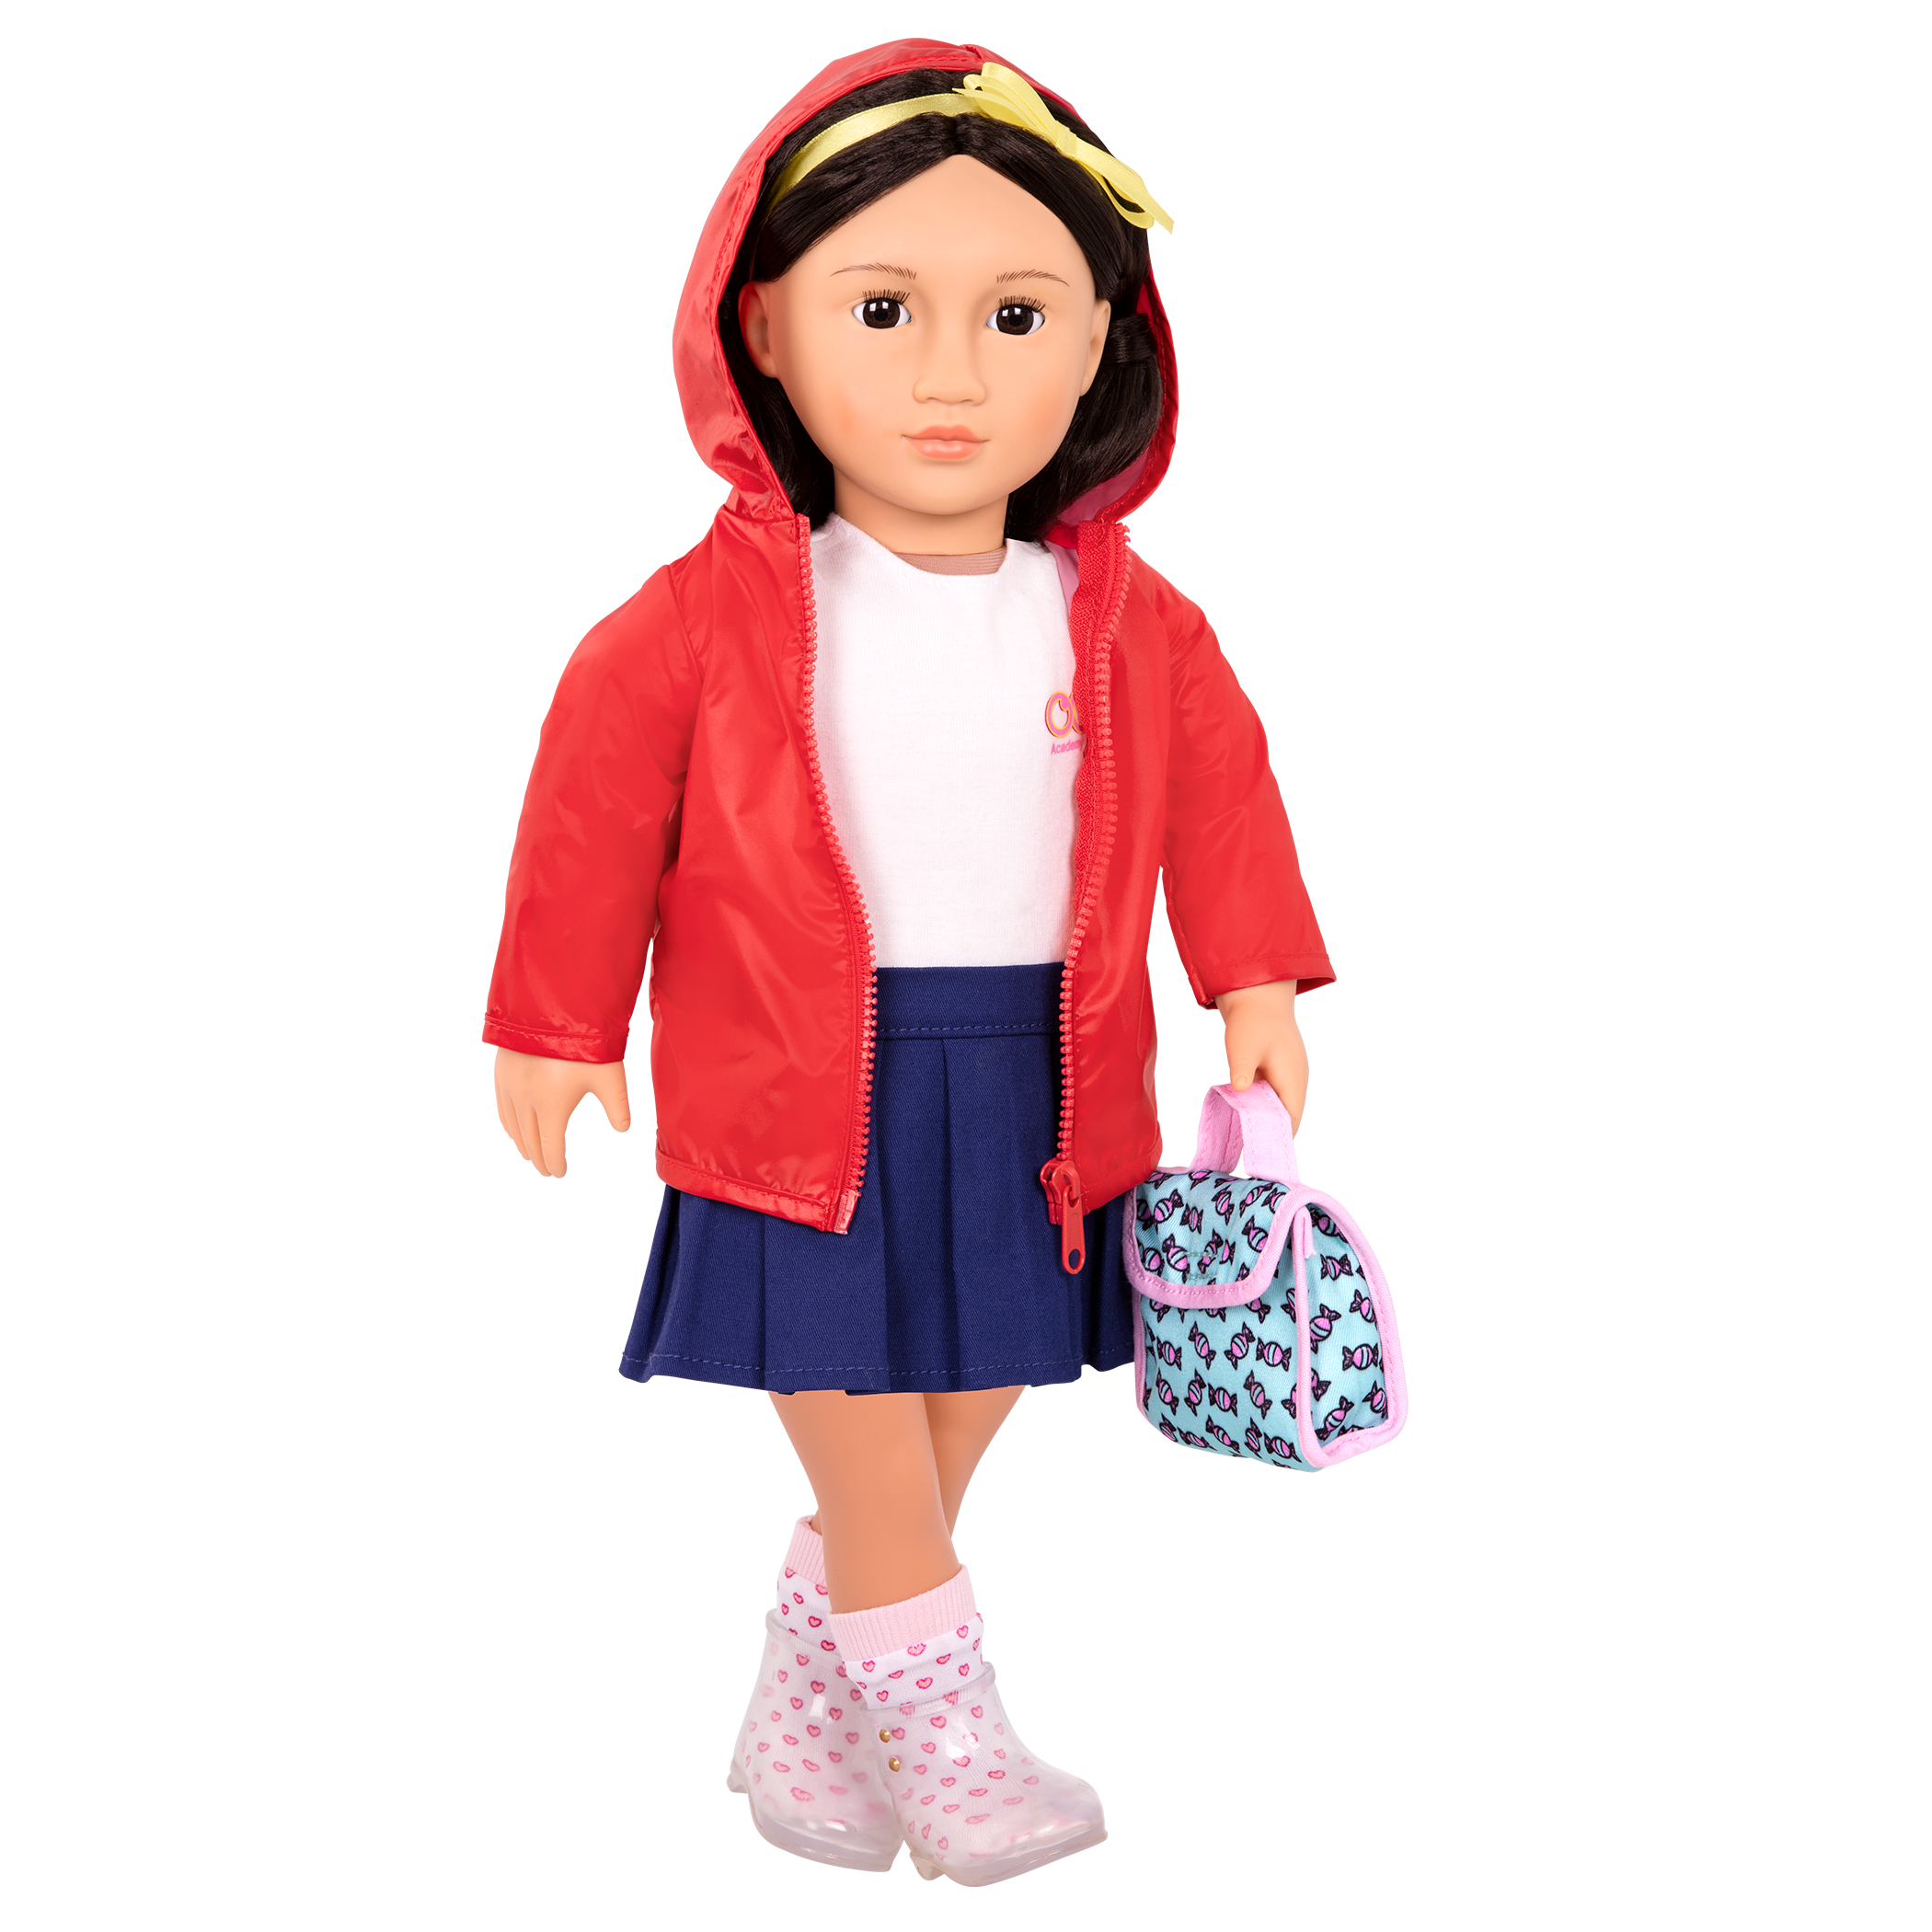 Aiko wearing Rainy Recess School Outfit with hood